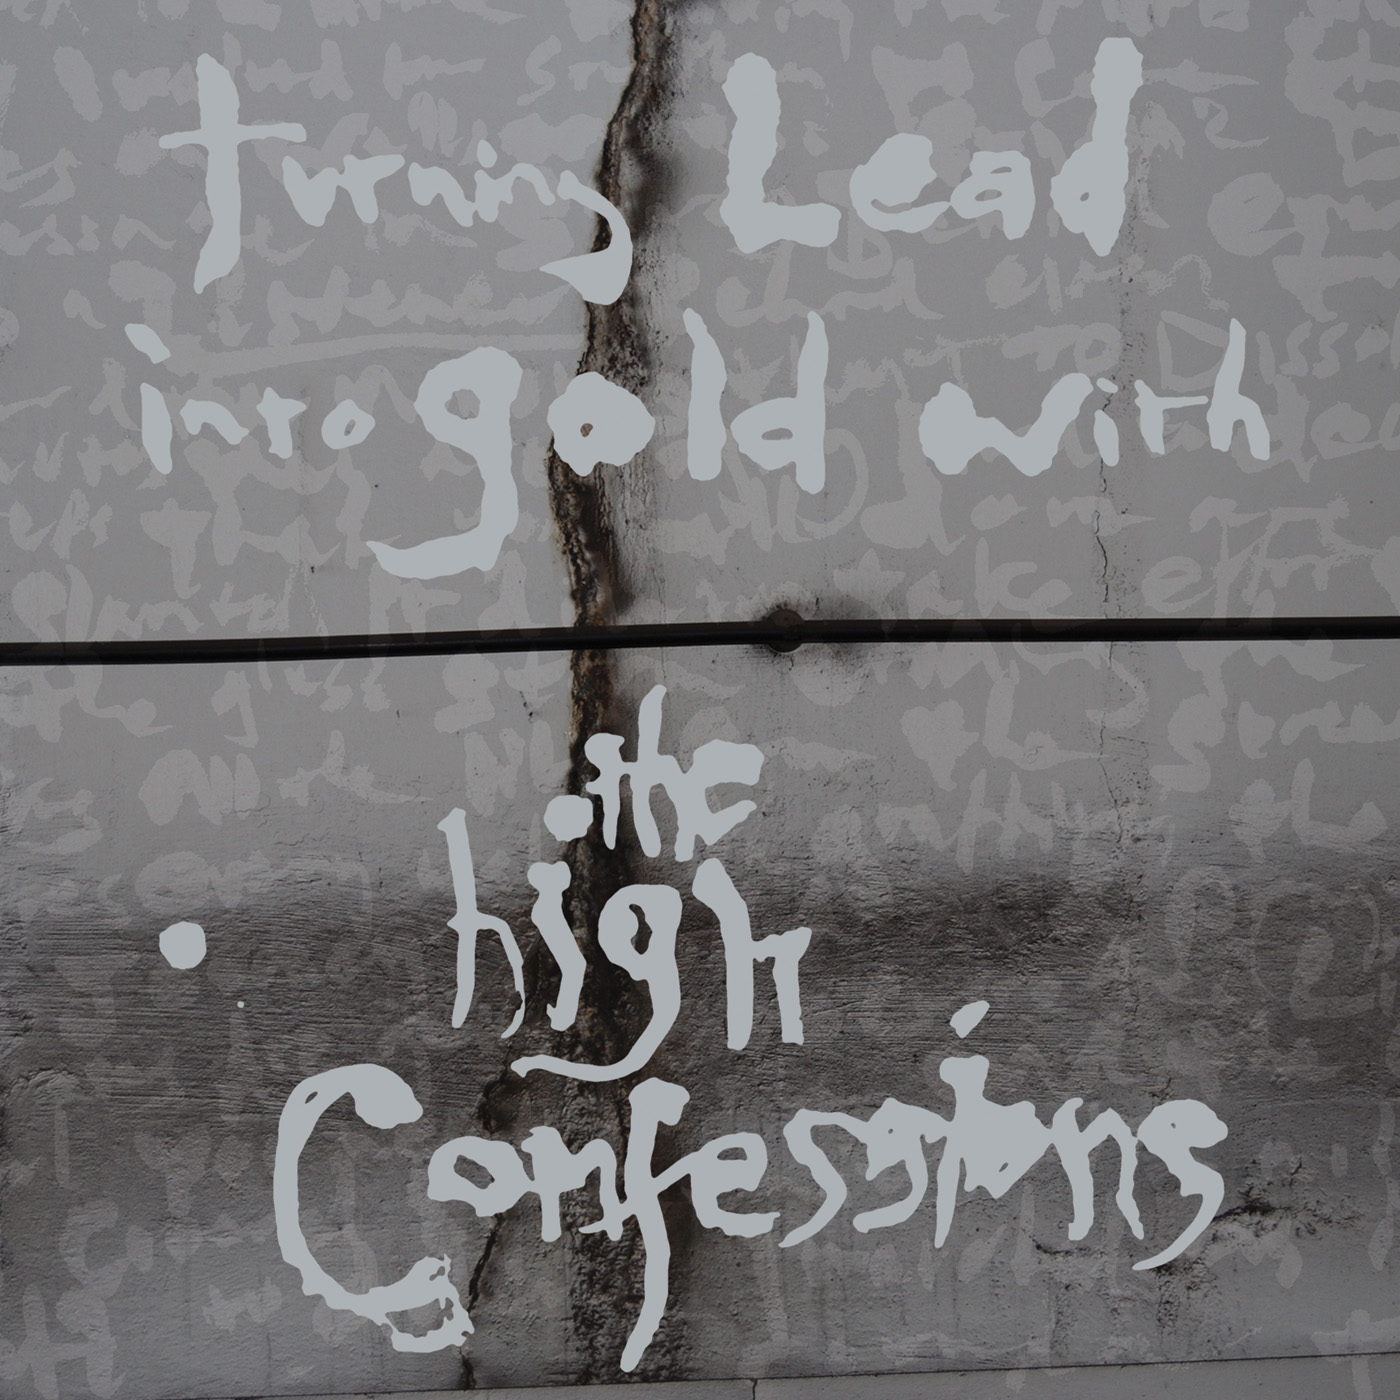 Turning Lead into Gold with The High Confessions (2LP)